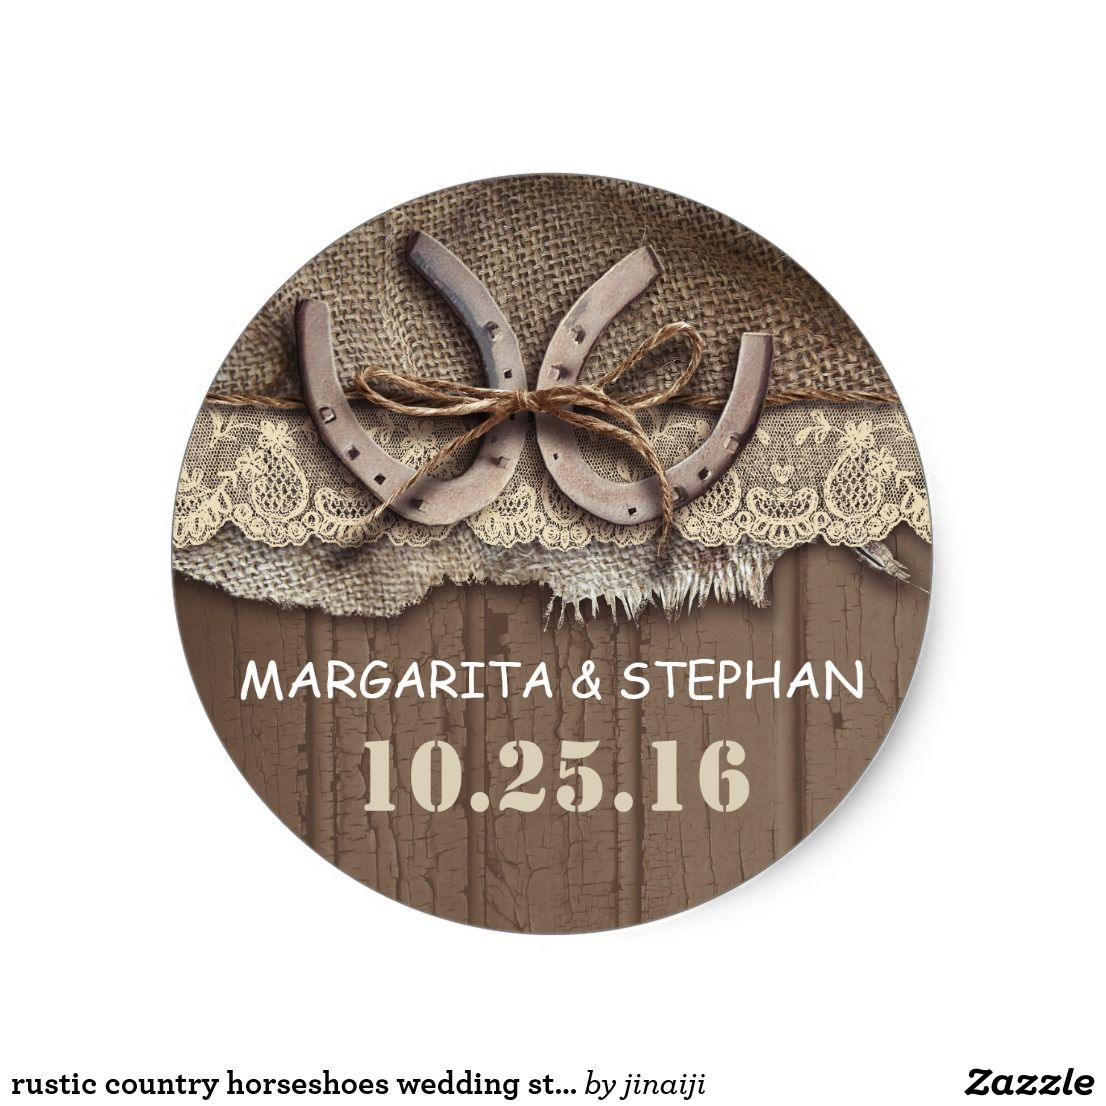 monogram wedding envelope seals sticker%0A Rustic country horseshoes wedding stickers